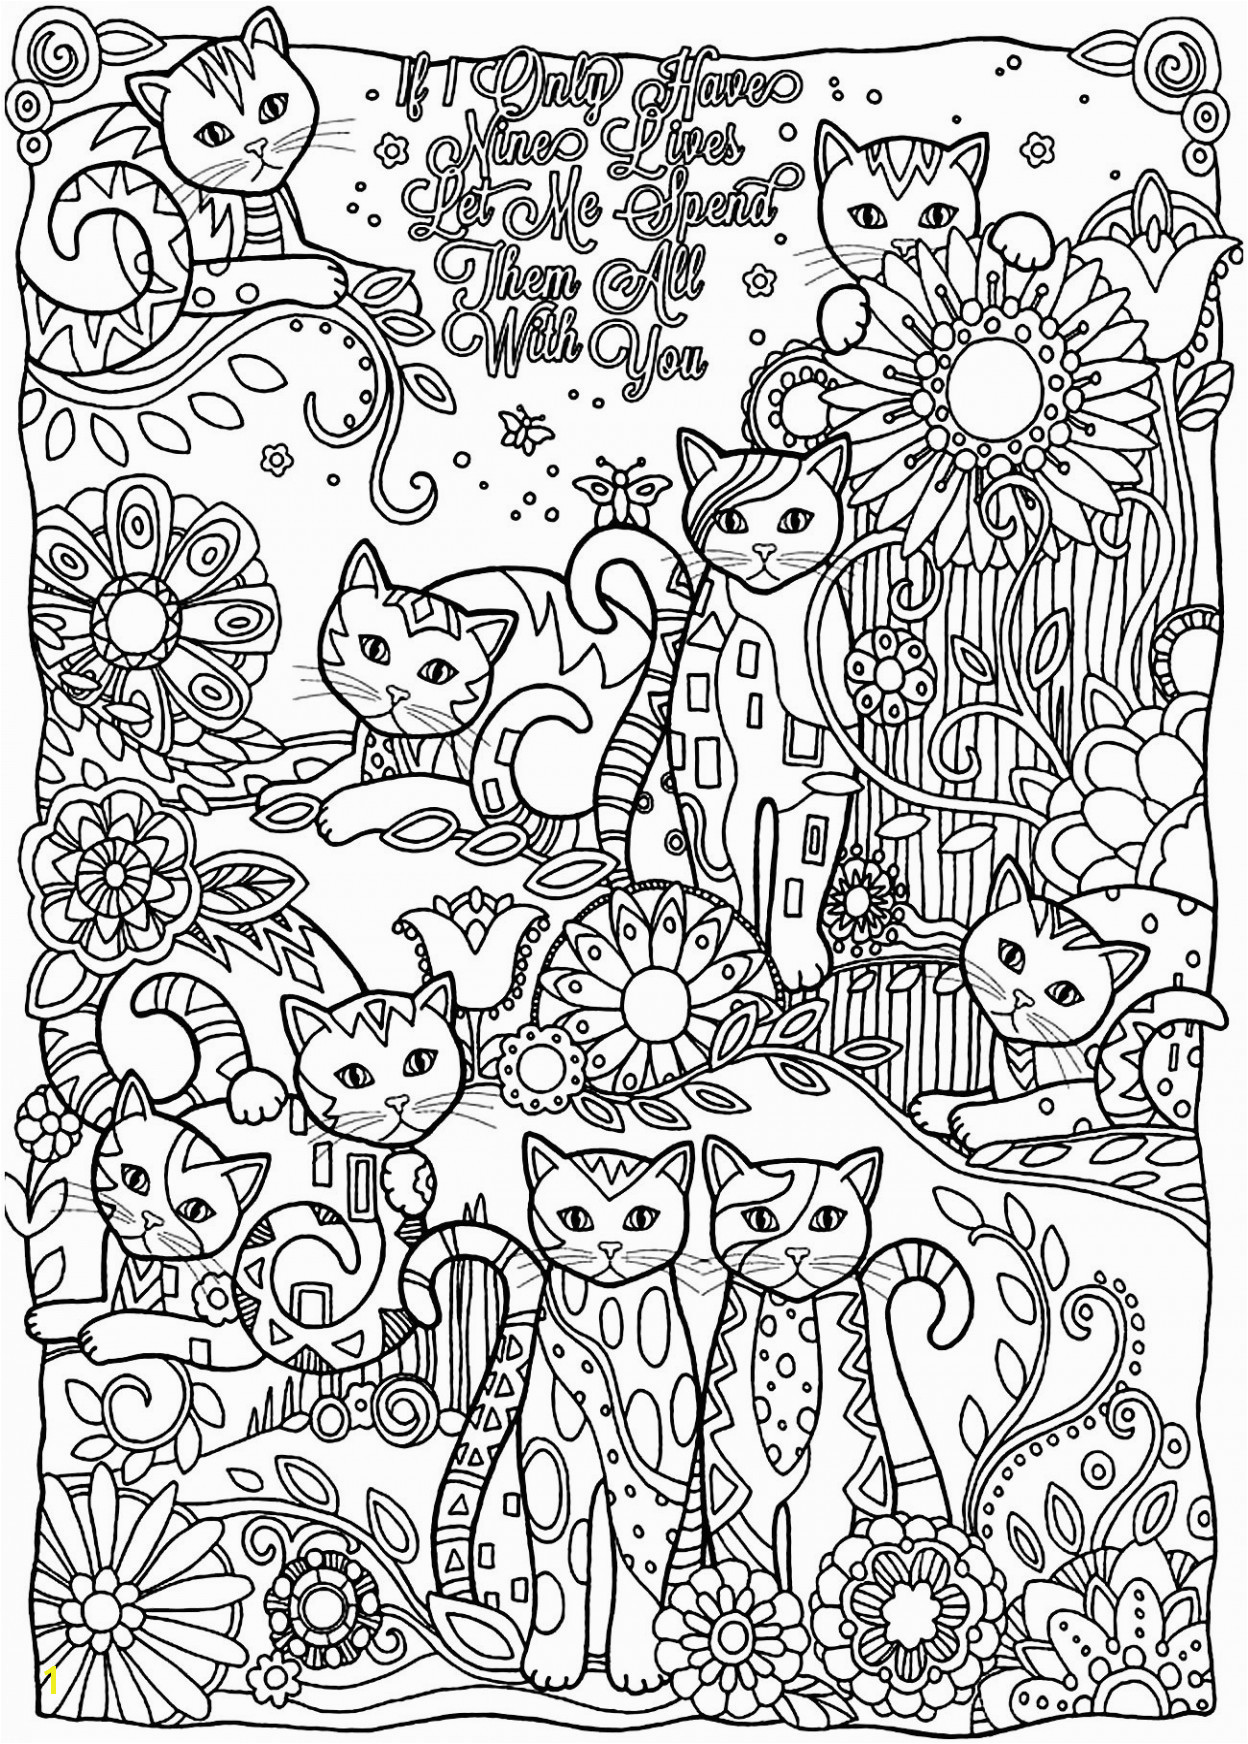 Easter Coloring Pages Printable Easter Coloring Pages Free Printable Best Od Dog Coloring Pages